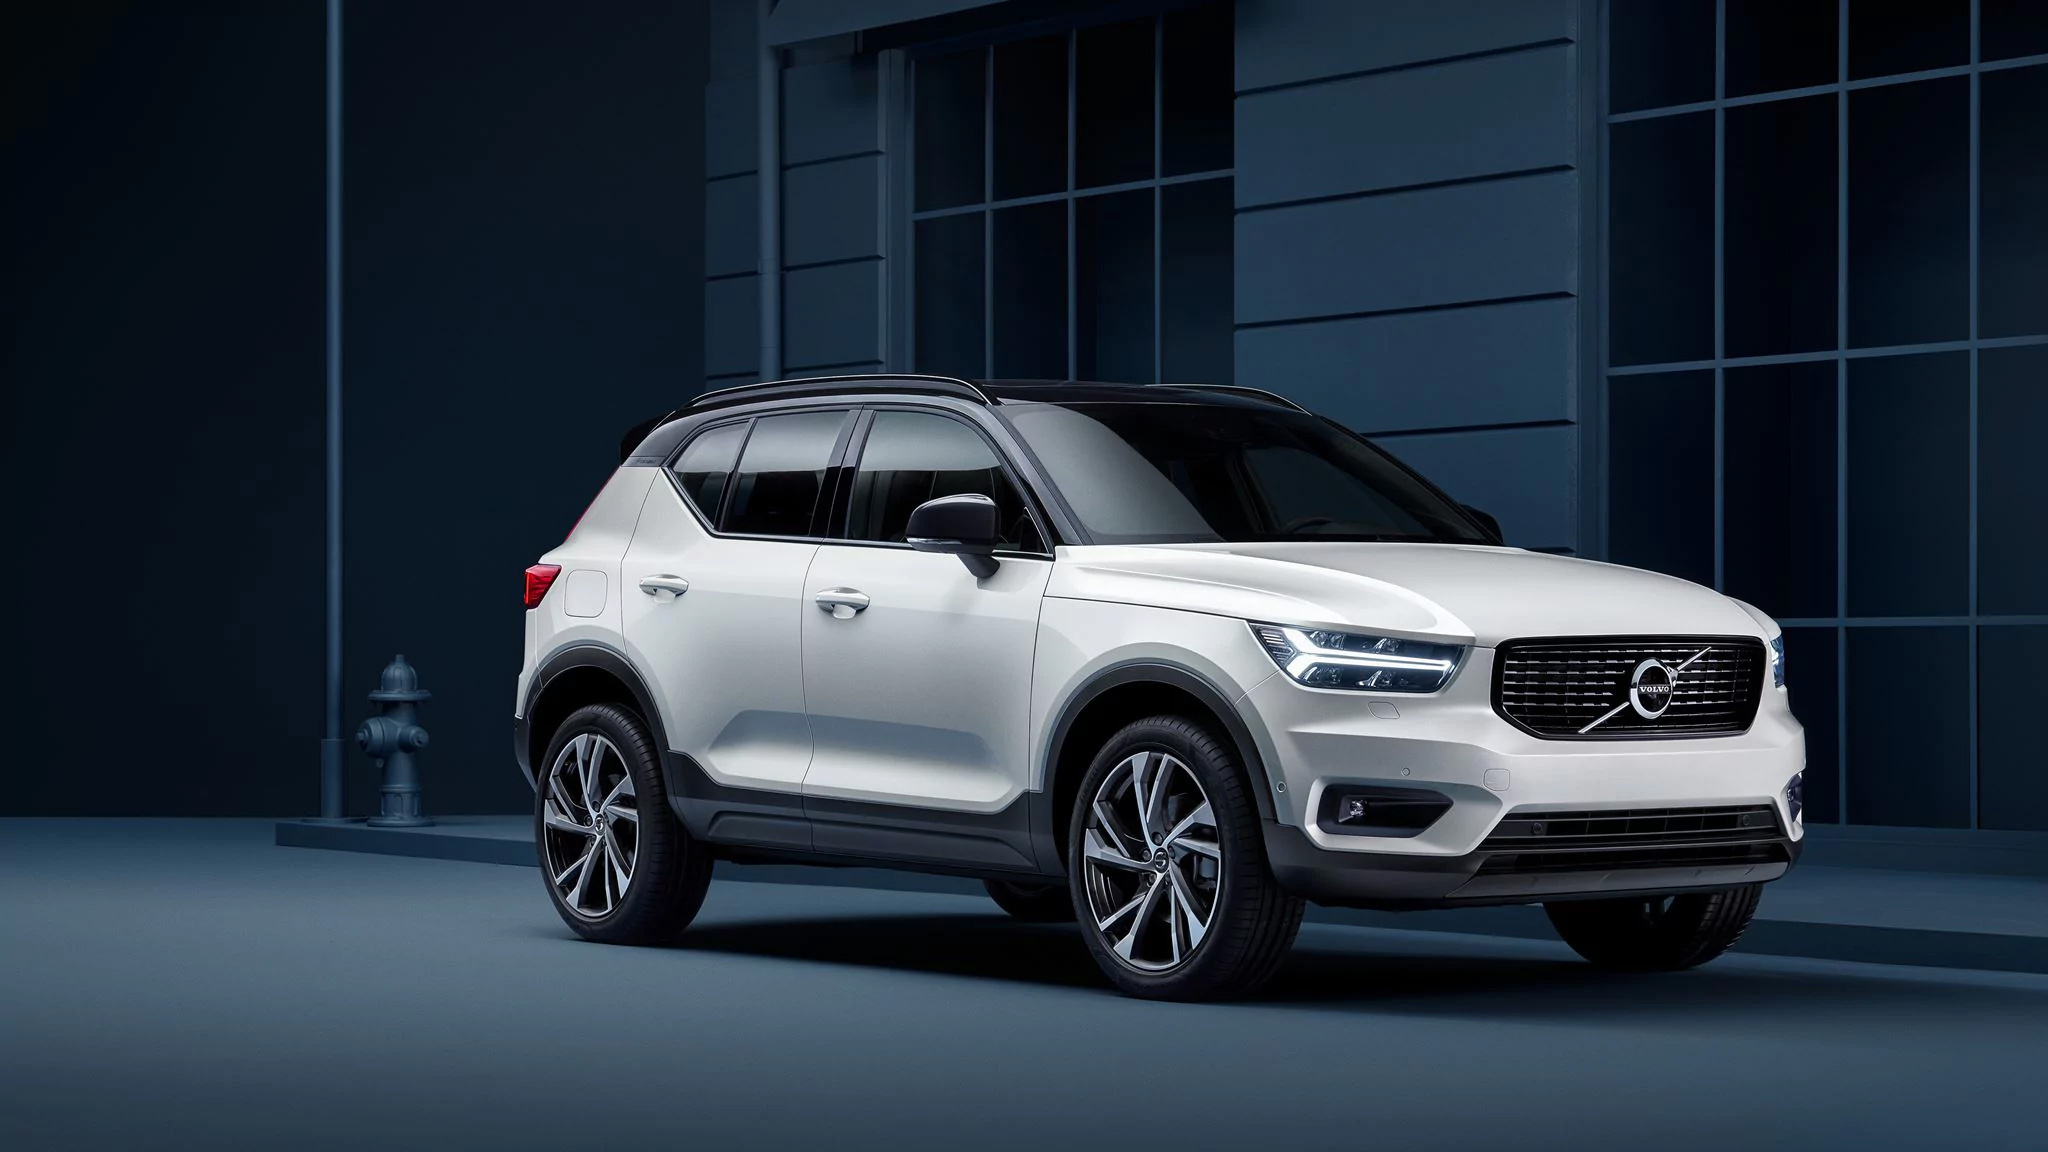 VOL-dealerwebsite-MY19-XC40-image02